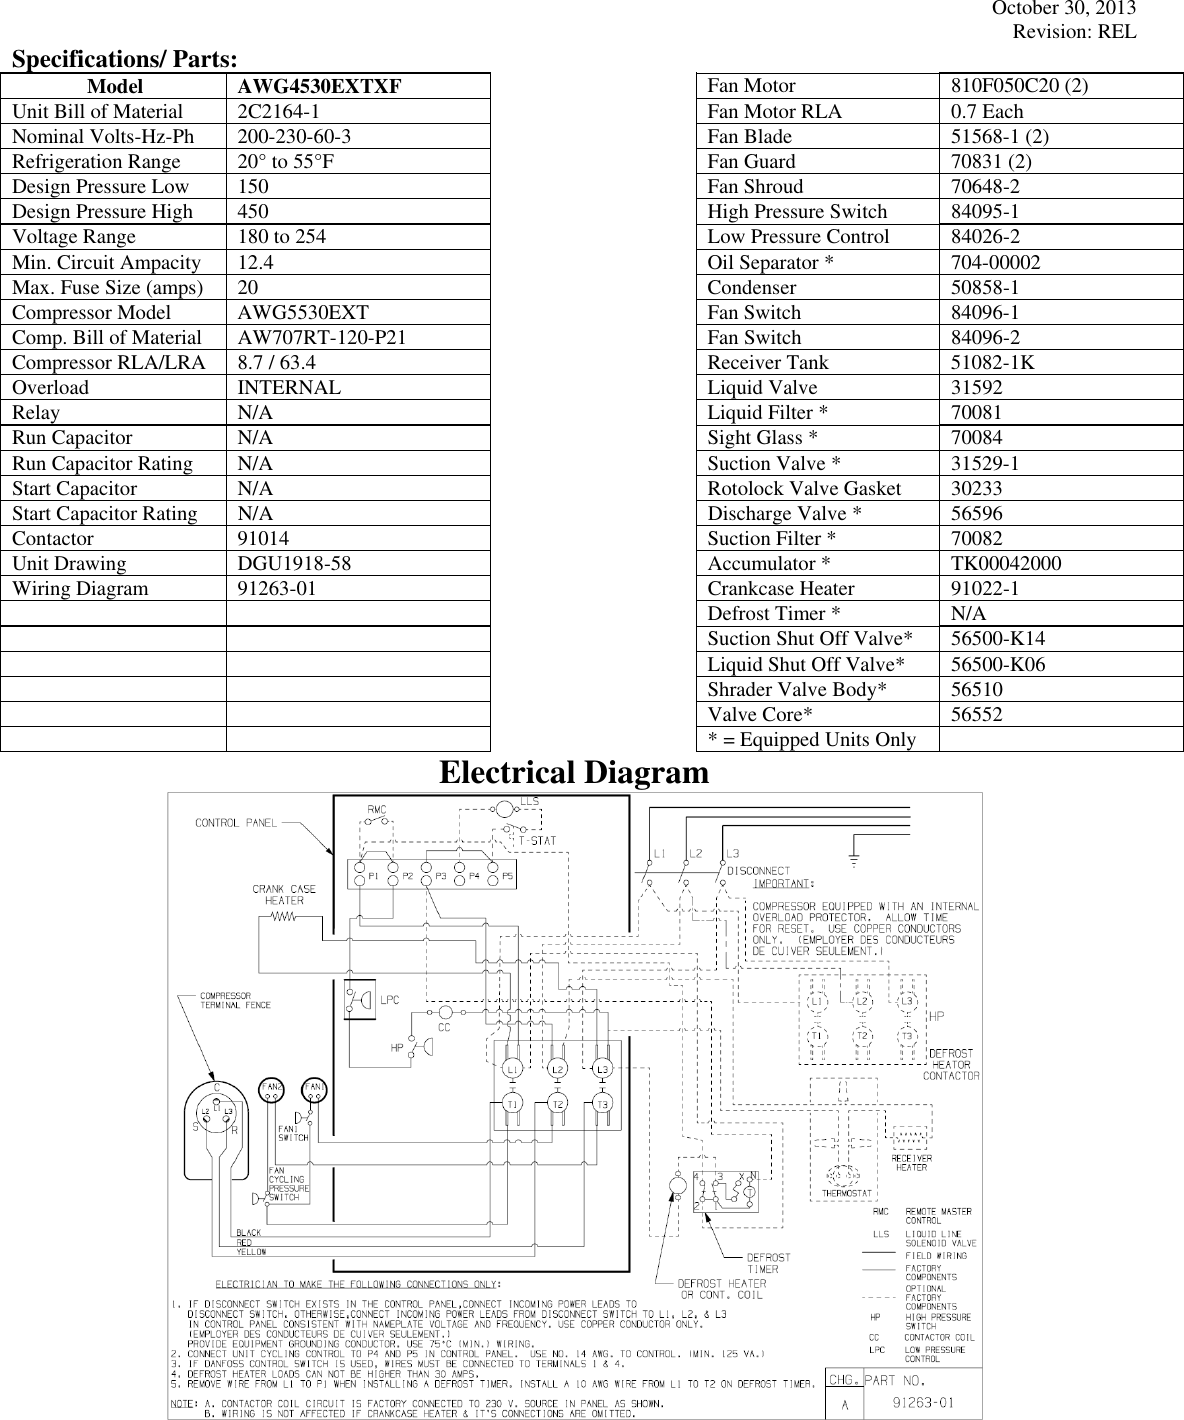 Tecumseh Awg4530extxf Performance Data Sheet 2c2164 1 Condenser Wiring Diagram Page 2 Of